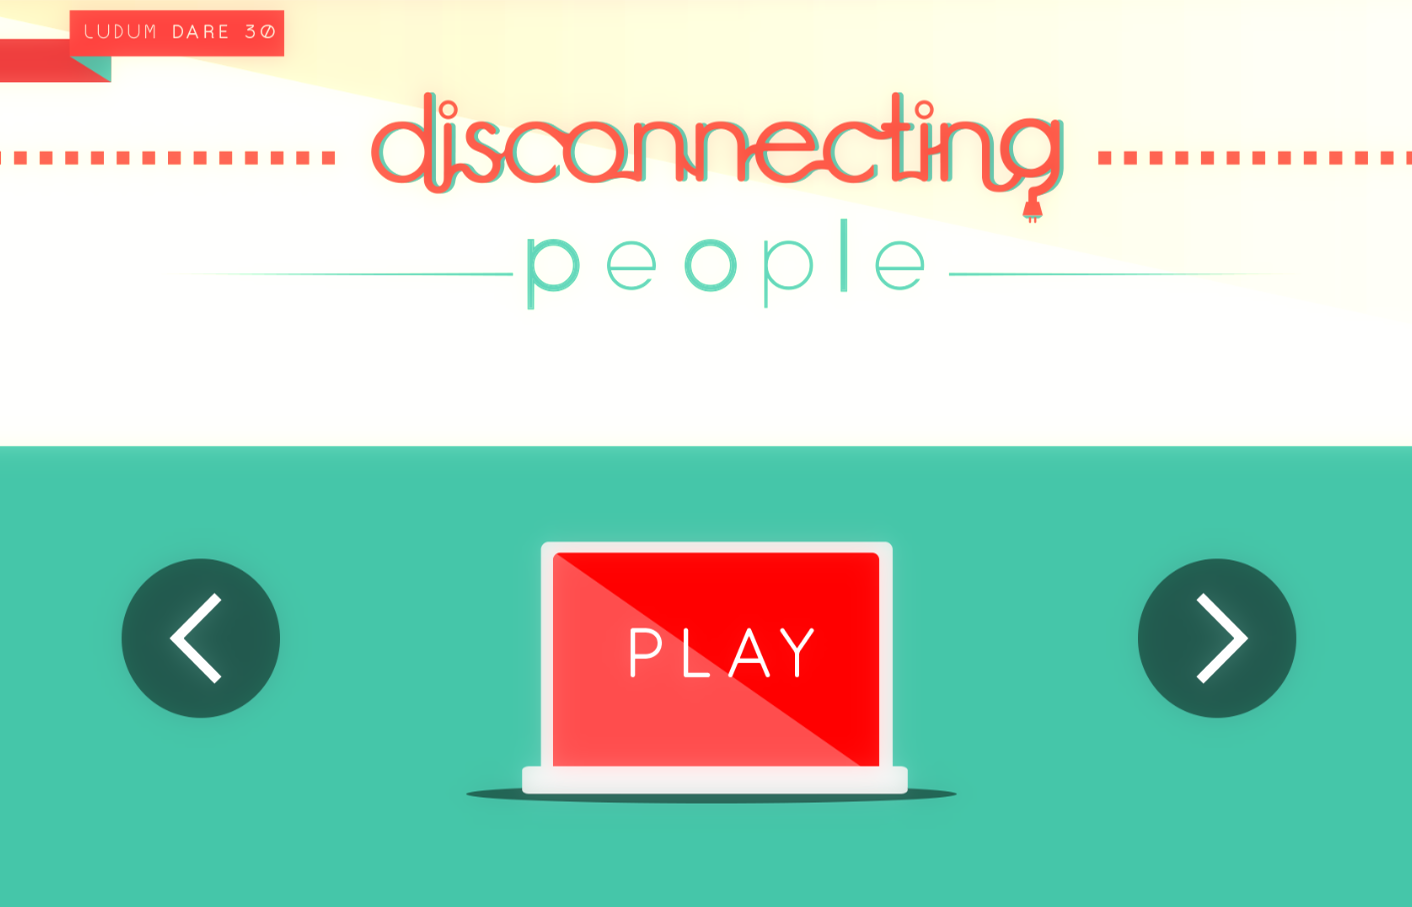 Disconnecting People game